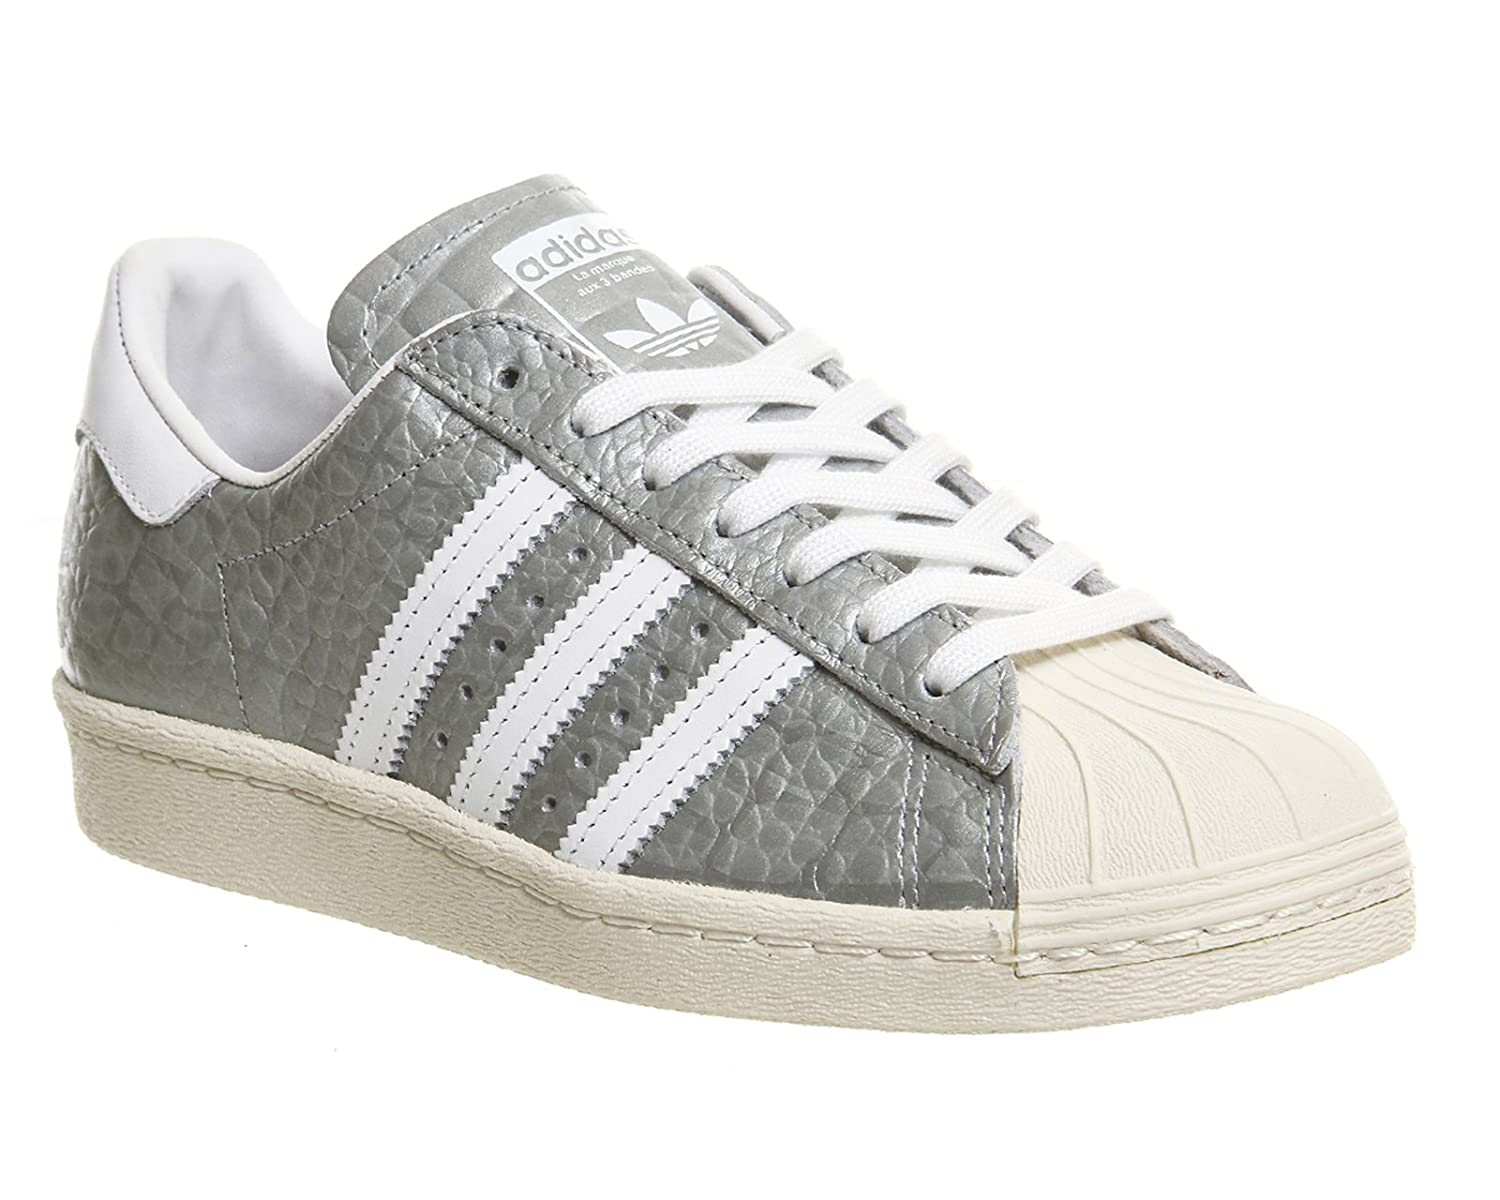 Limited Edt Test Rides: The Cheap Adidas Superstar Skate Vulc